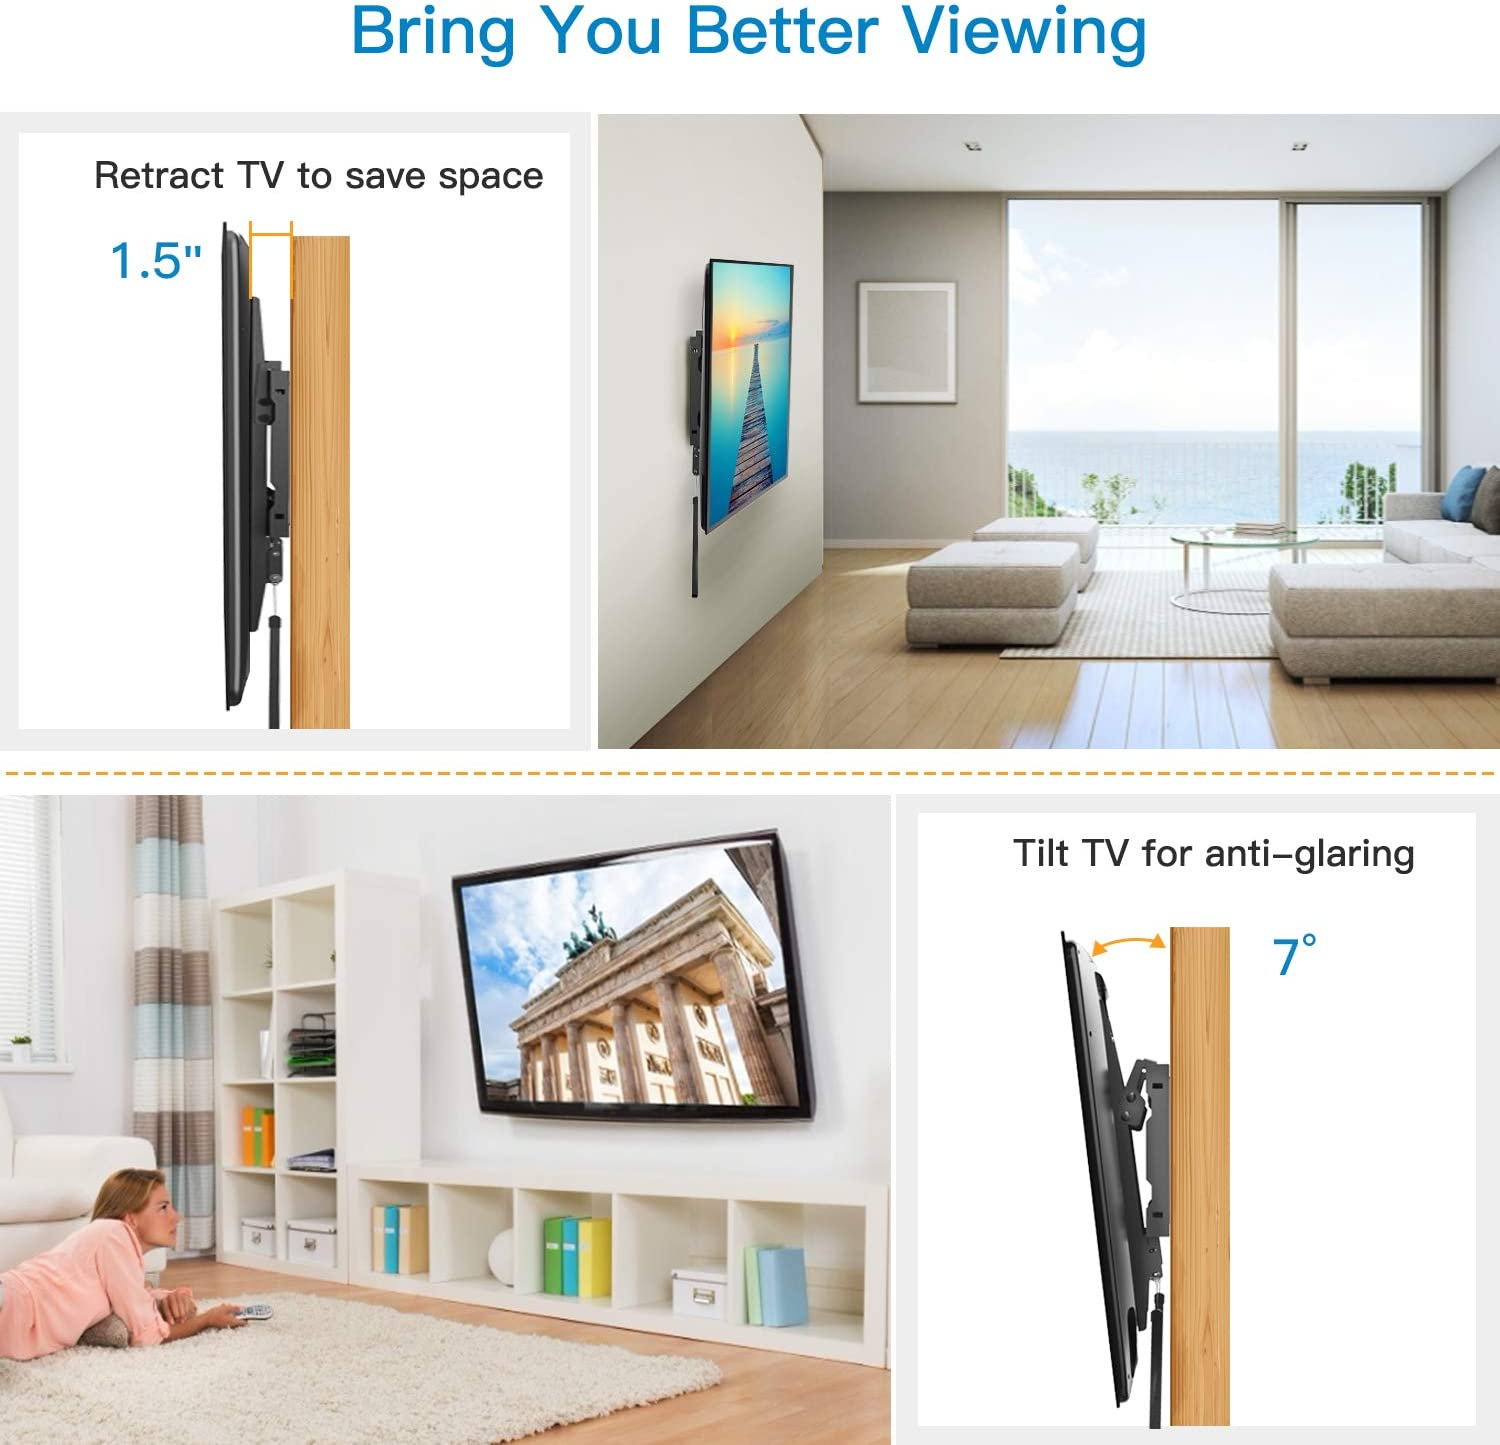 Large Tilting Mount Fits 16-24 Inch Wood Studs Max VESA 600x400mm Holds up to 132lbs by Pipishell Tilt TV Wall Mount Bracket Low Profile for Most 37-70 Inch LED LCD OLED Plasma Flat Curved Screen TVs